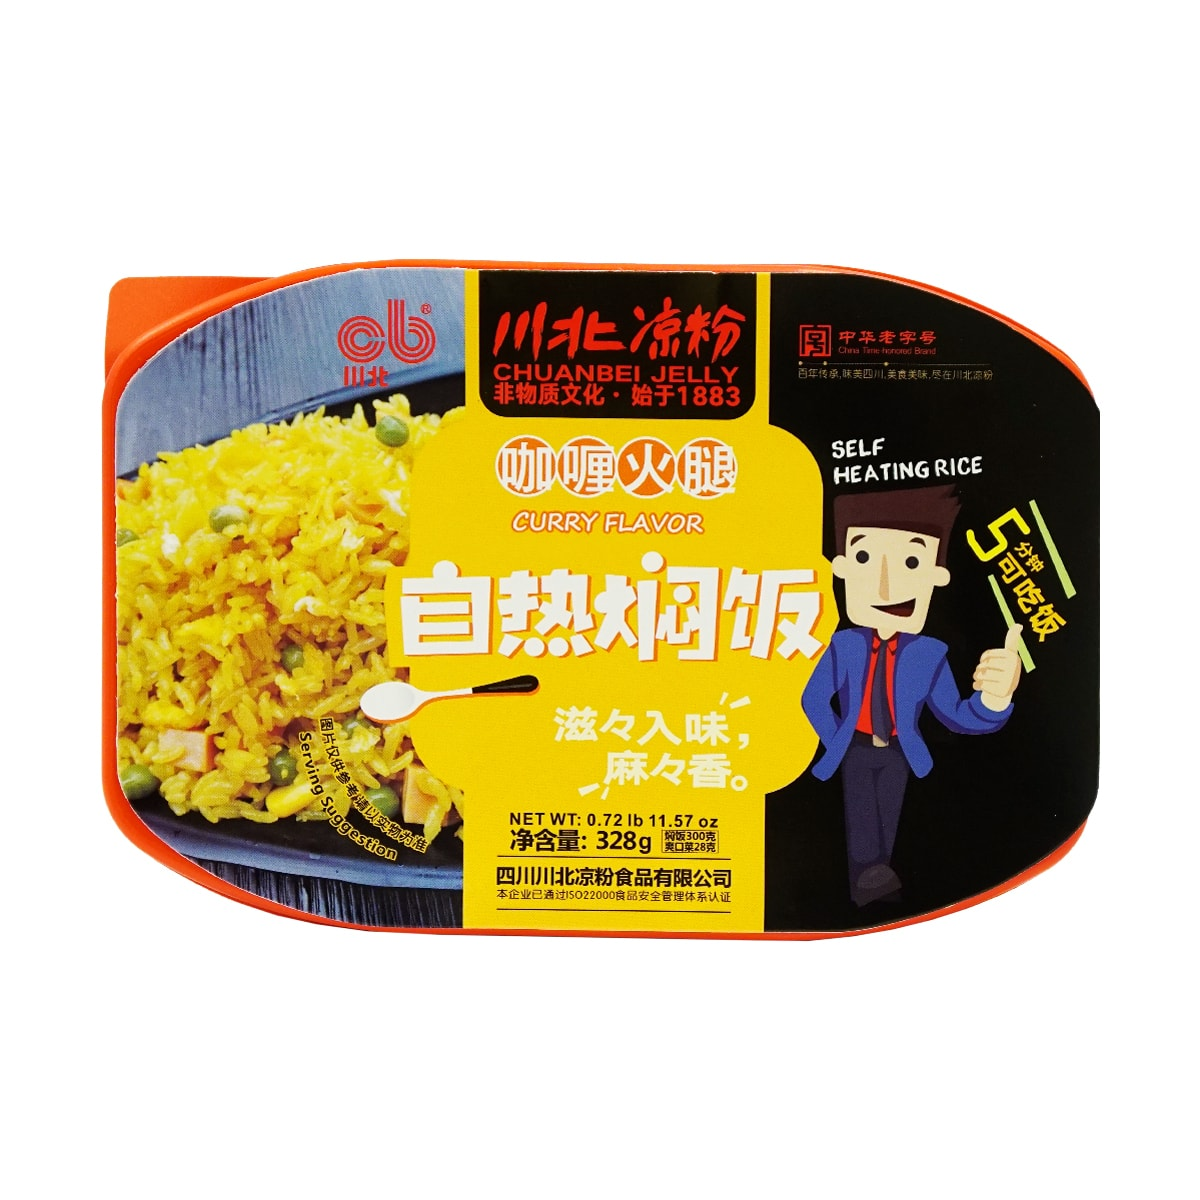 Yamibuy.com:Customer reviews:CHUANBEI JELLY Ready to Eat Instant Rice (Curry Ham Flavor Spicy) 328g